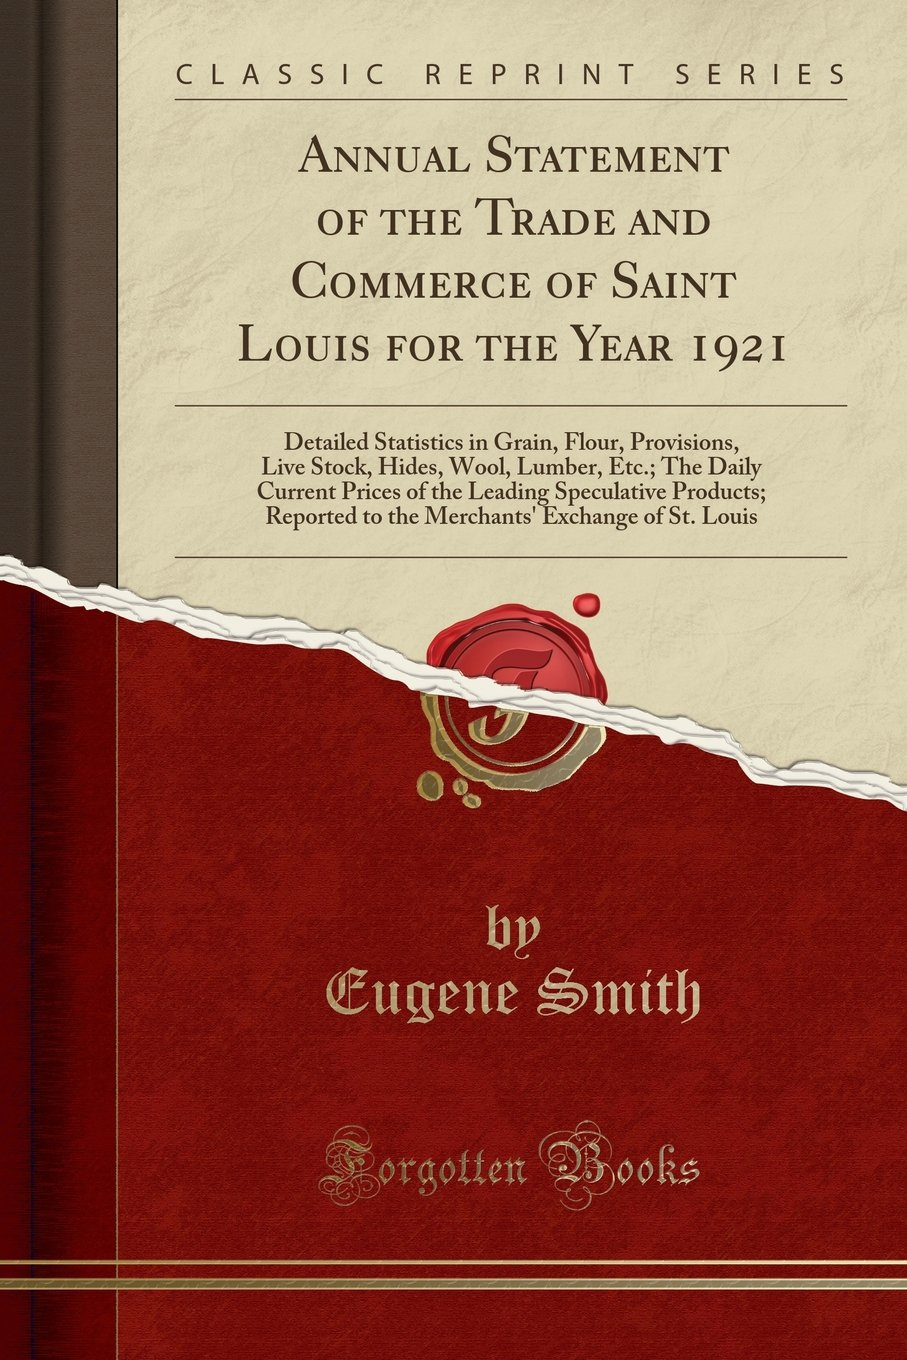 Annual Statement of the Trade and Commerce of Saint Louis for the Year 1921: Detailed Statistics in Grain, Flour, Provisions, Live Stock, Hides, Wool, ... Products; Reported to the Merchants' E pdf epub